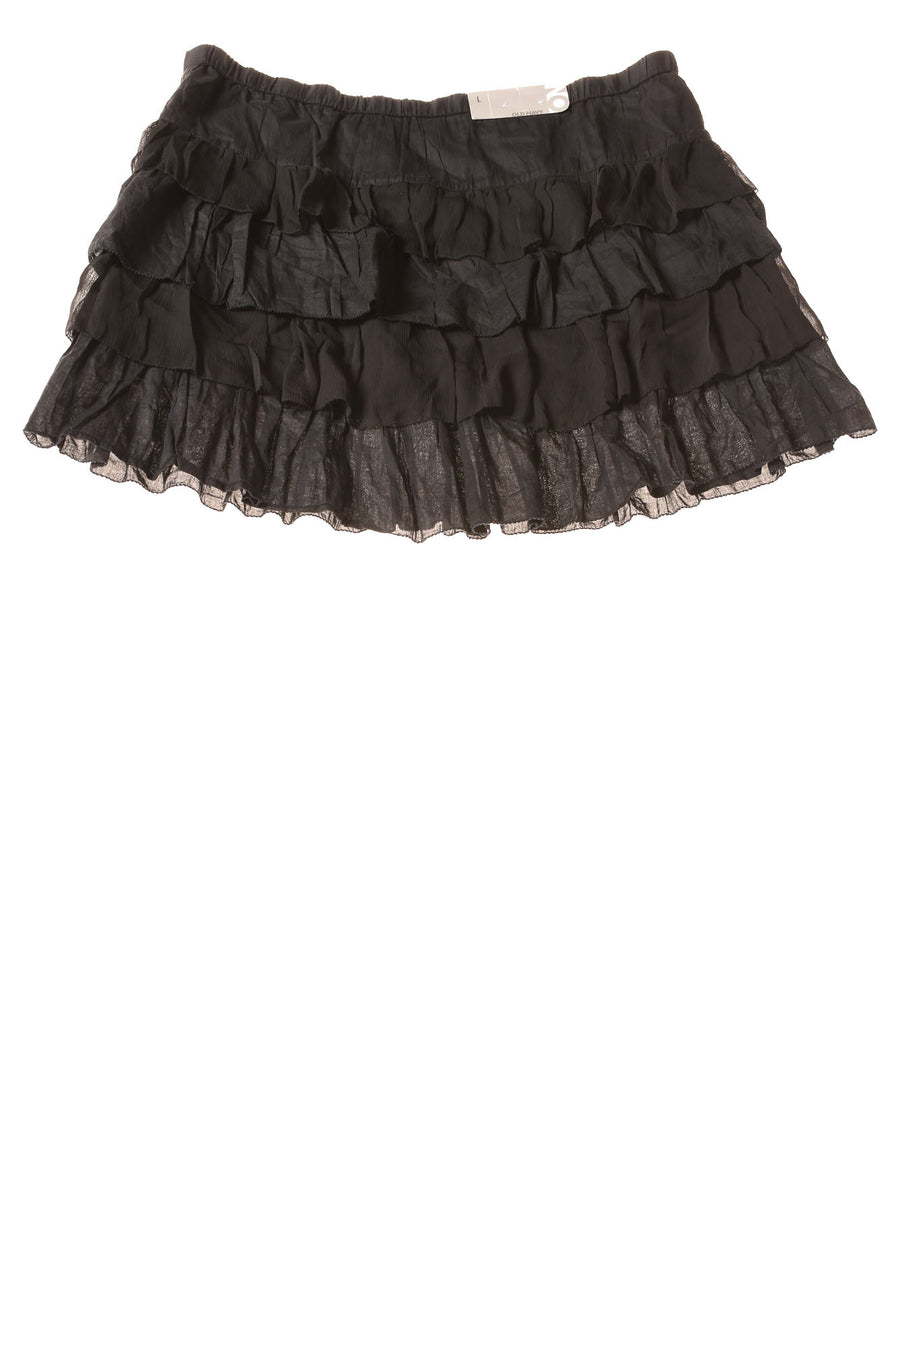 NEW Old Navy Women's Skirt Large Black